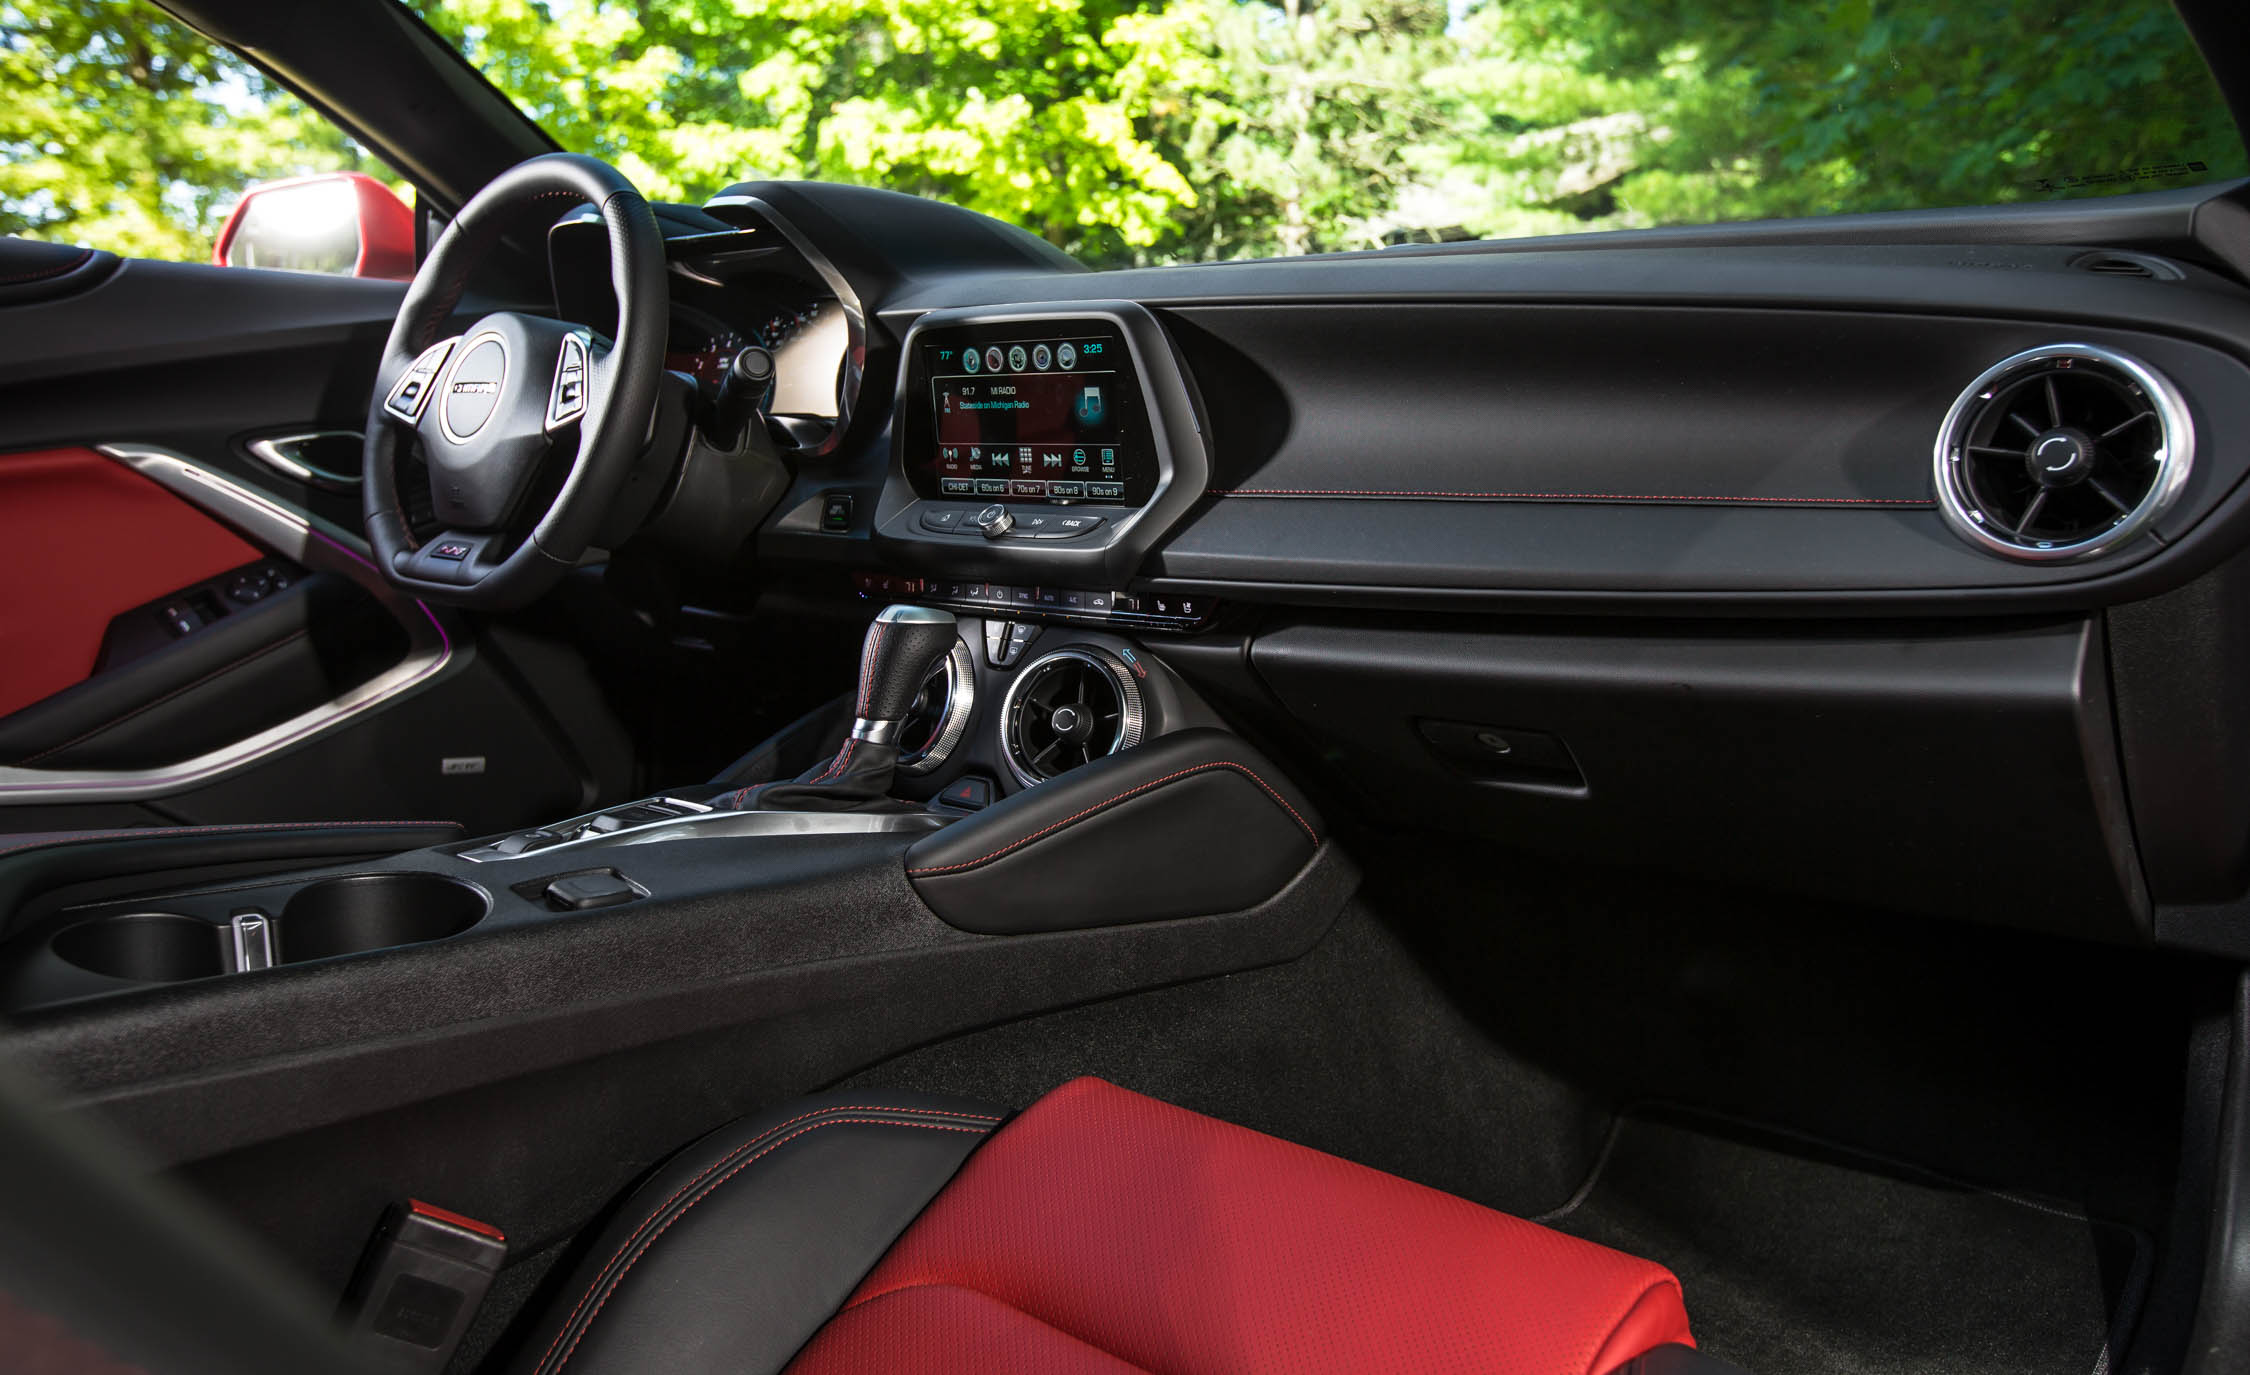 2016 chevrolet ss interior - photo #17